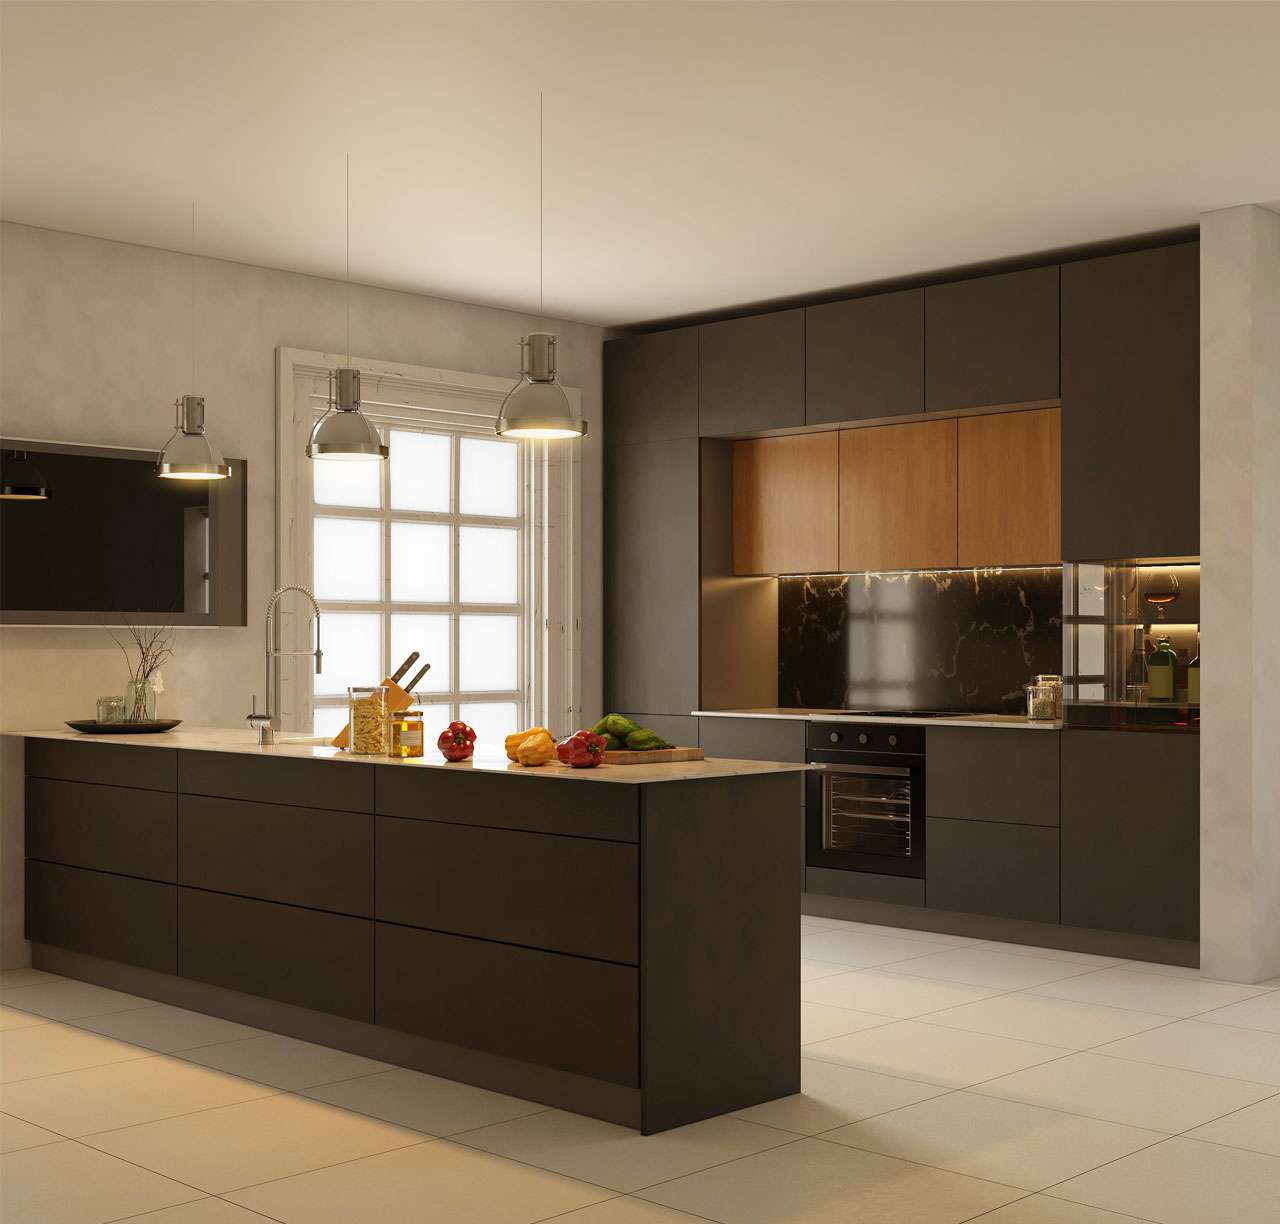 Premium British kitchen design with stylish worktop